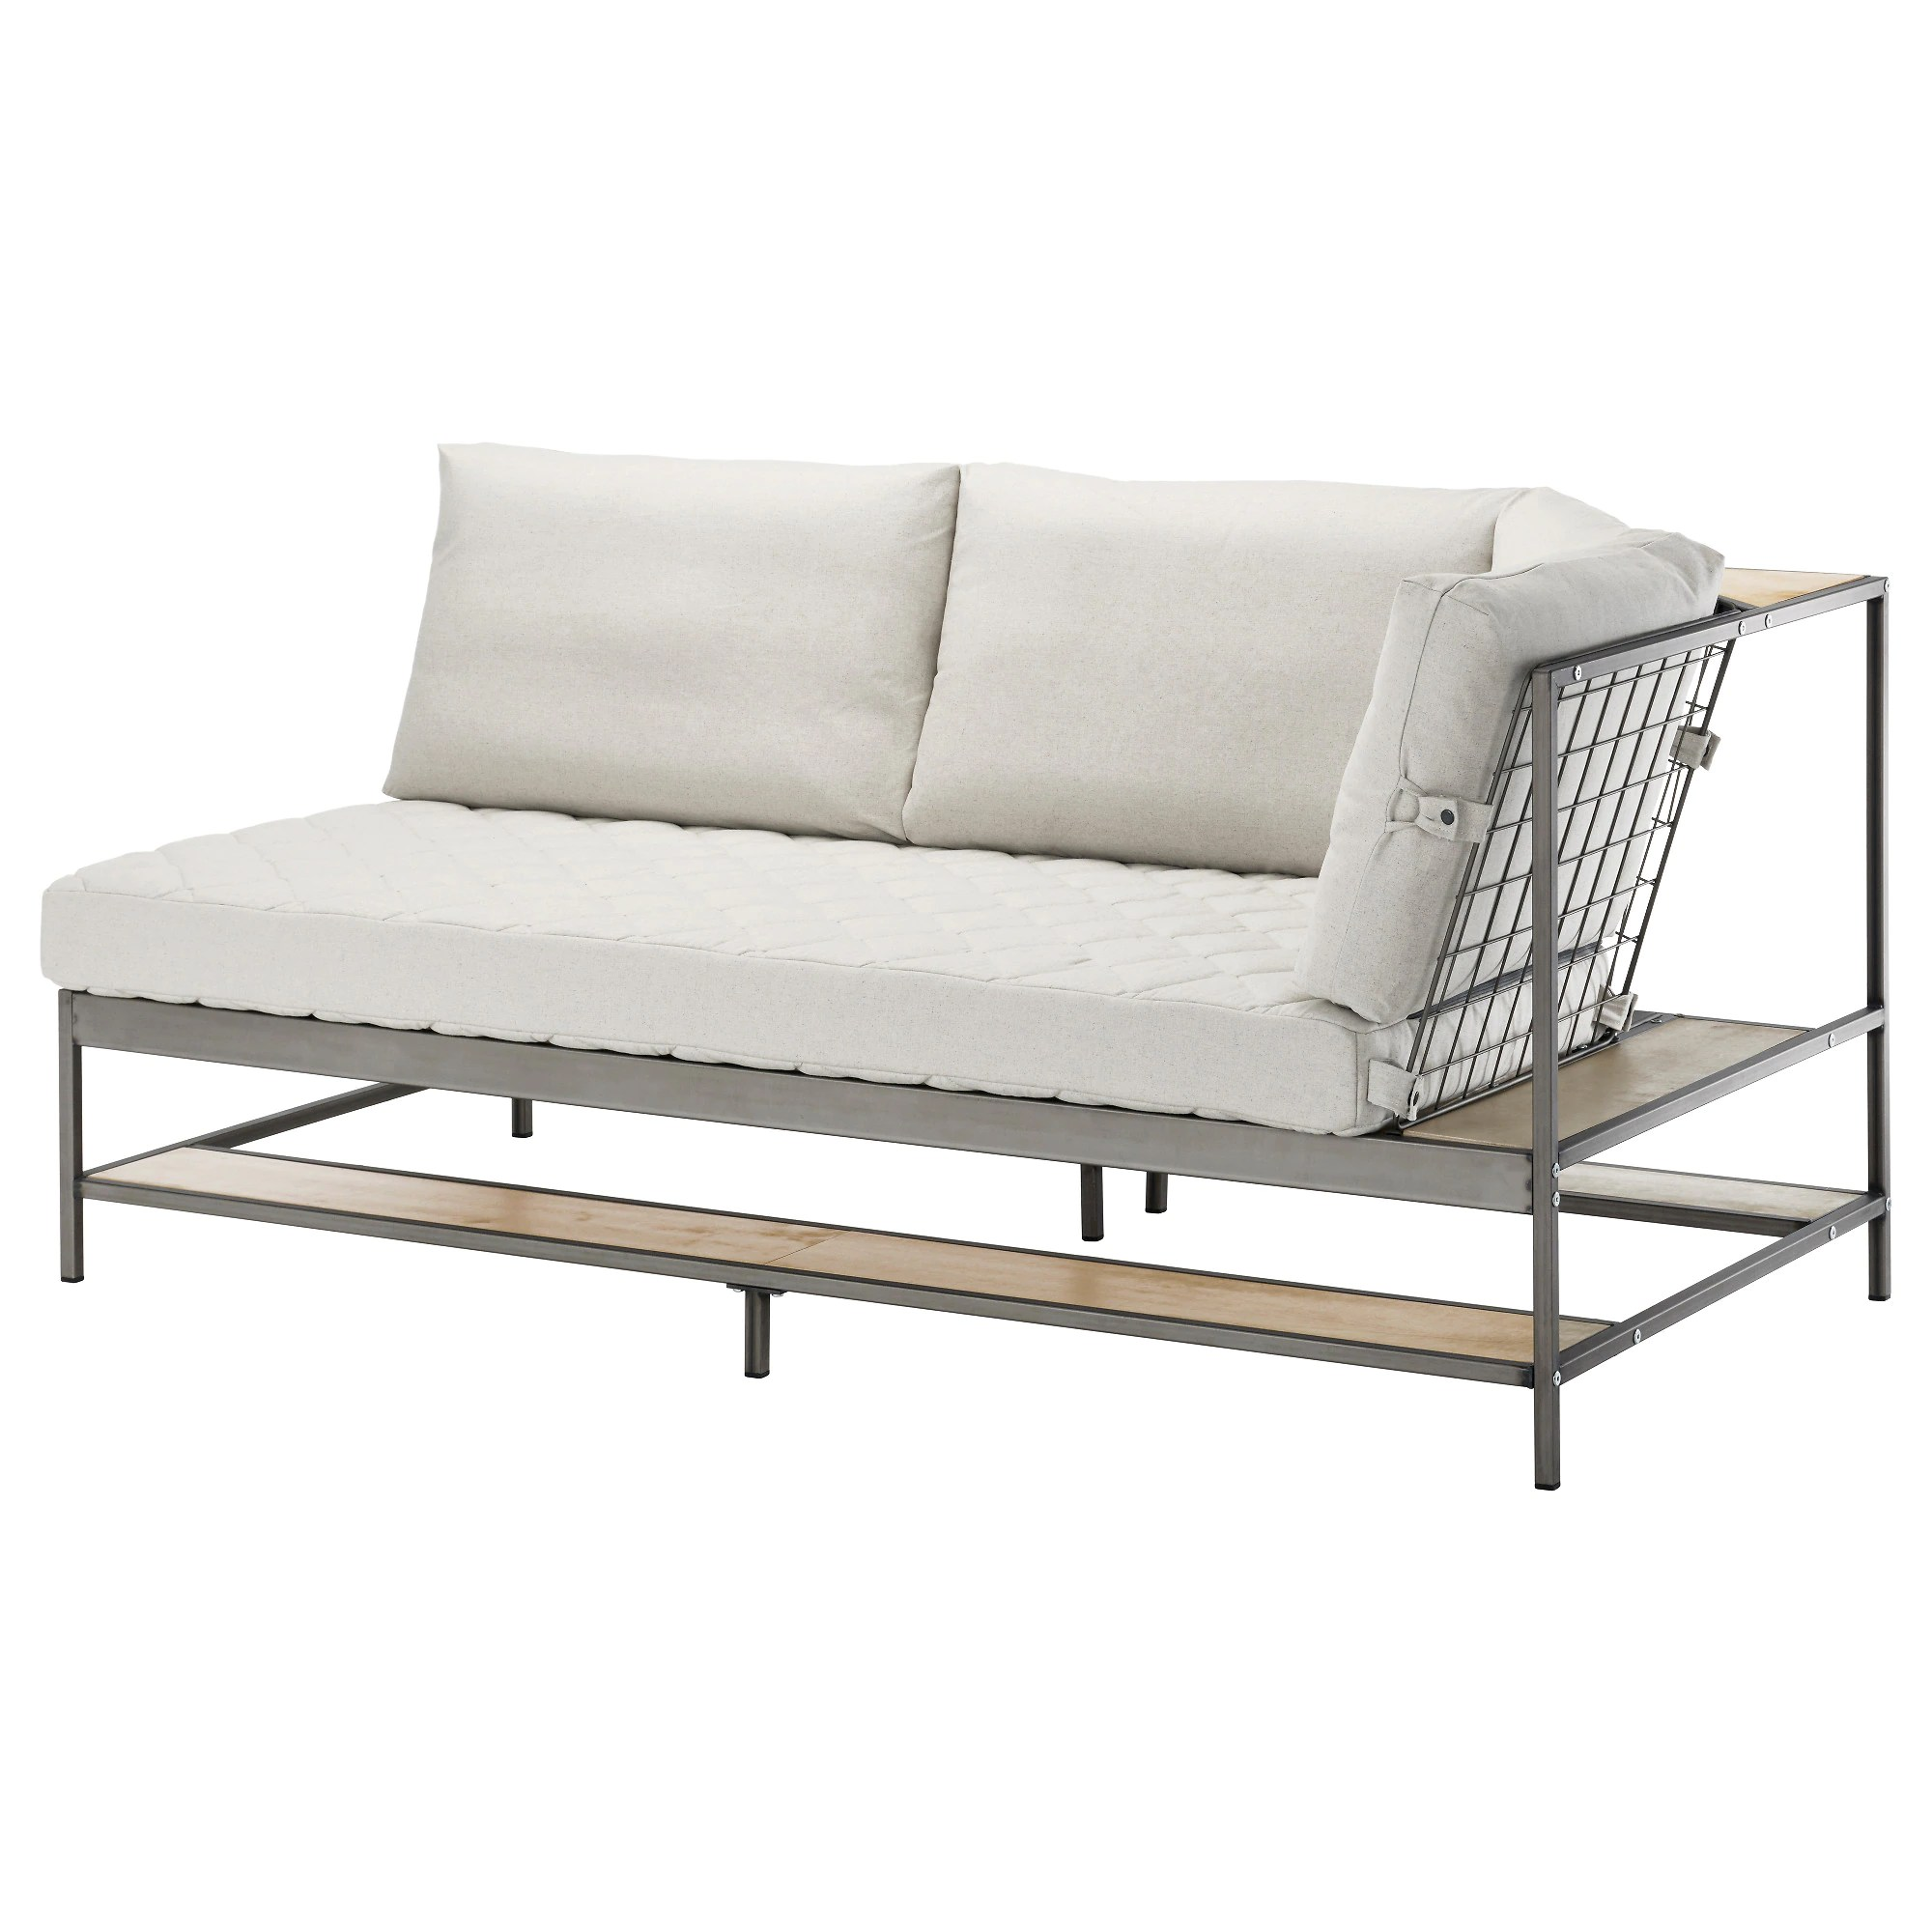 Ikea Online Bettsofa Ekebol Sofa Katorp Natural